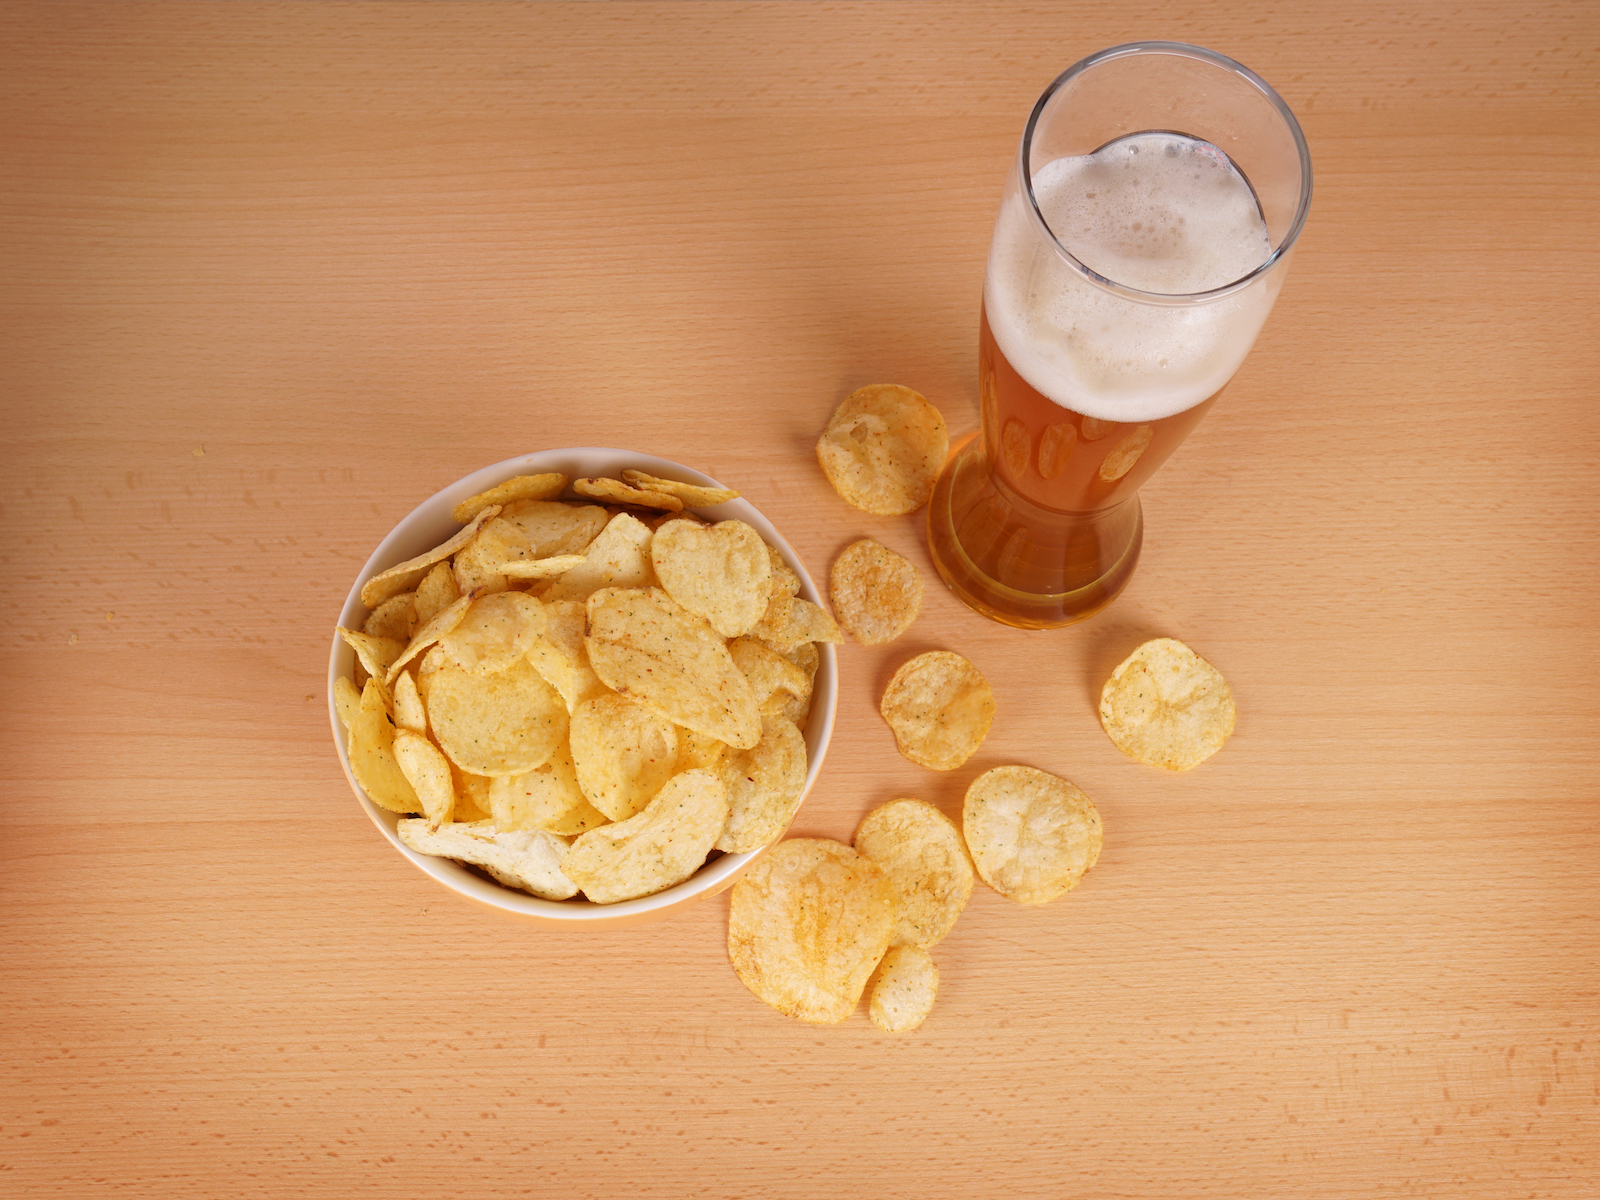 Beer and chips longevity